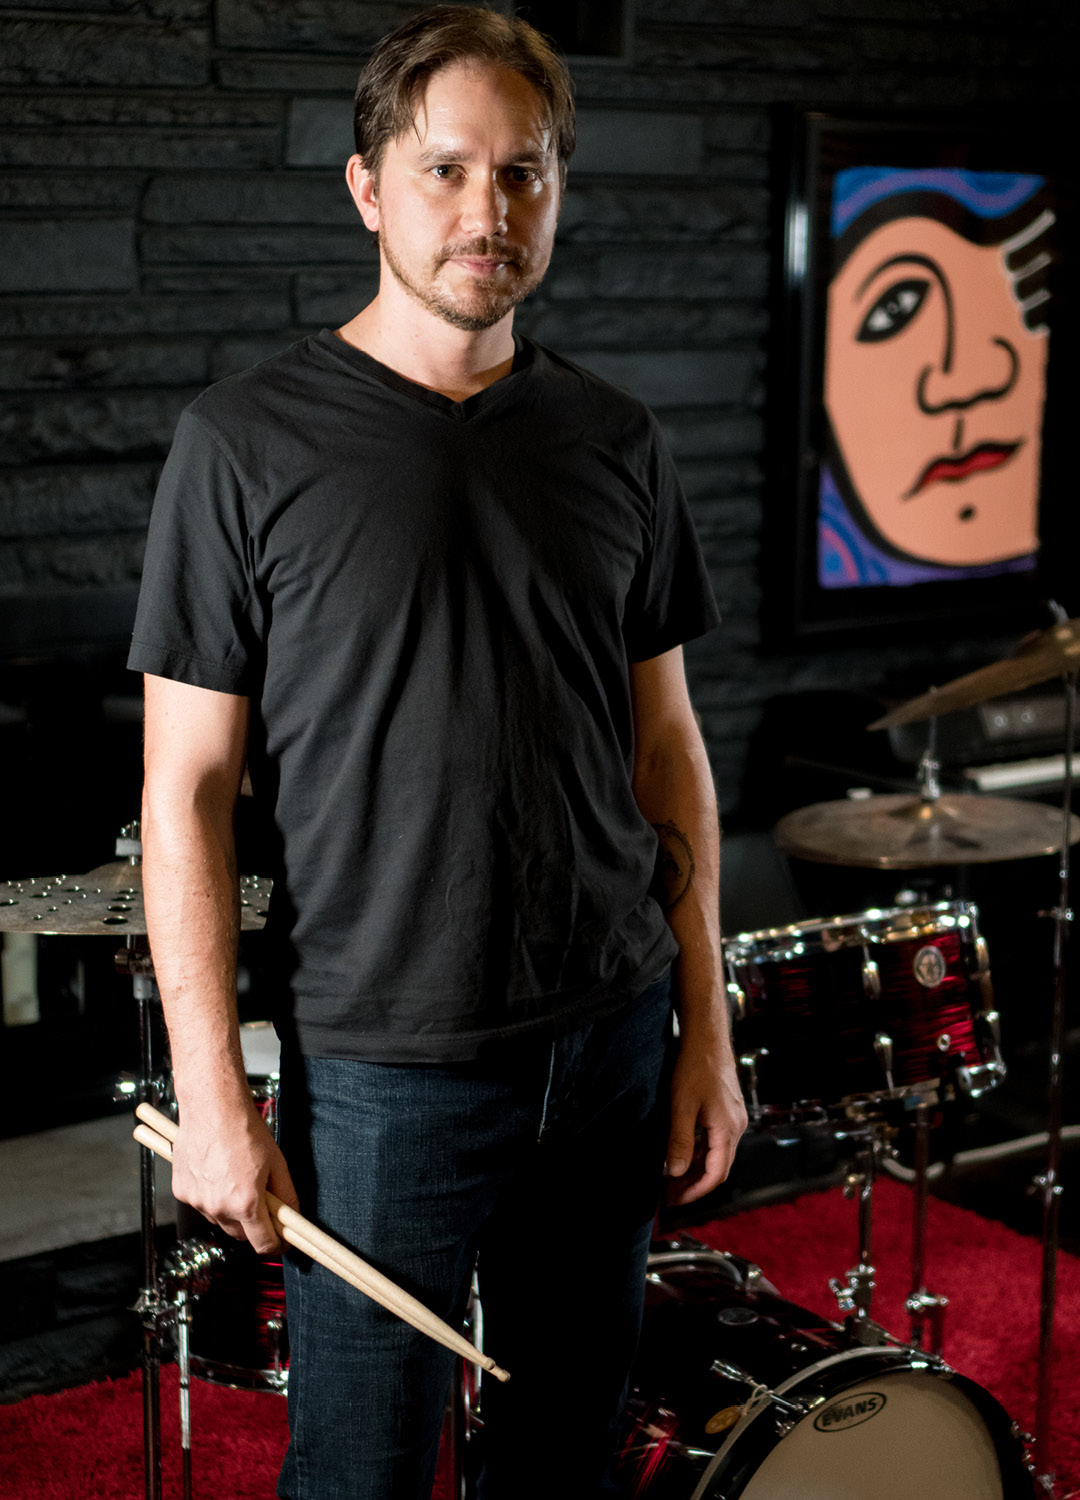 man standing holding drumsticks in front of drum kit